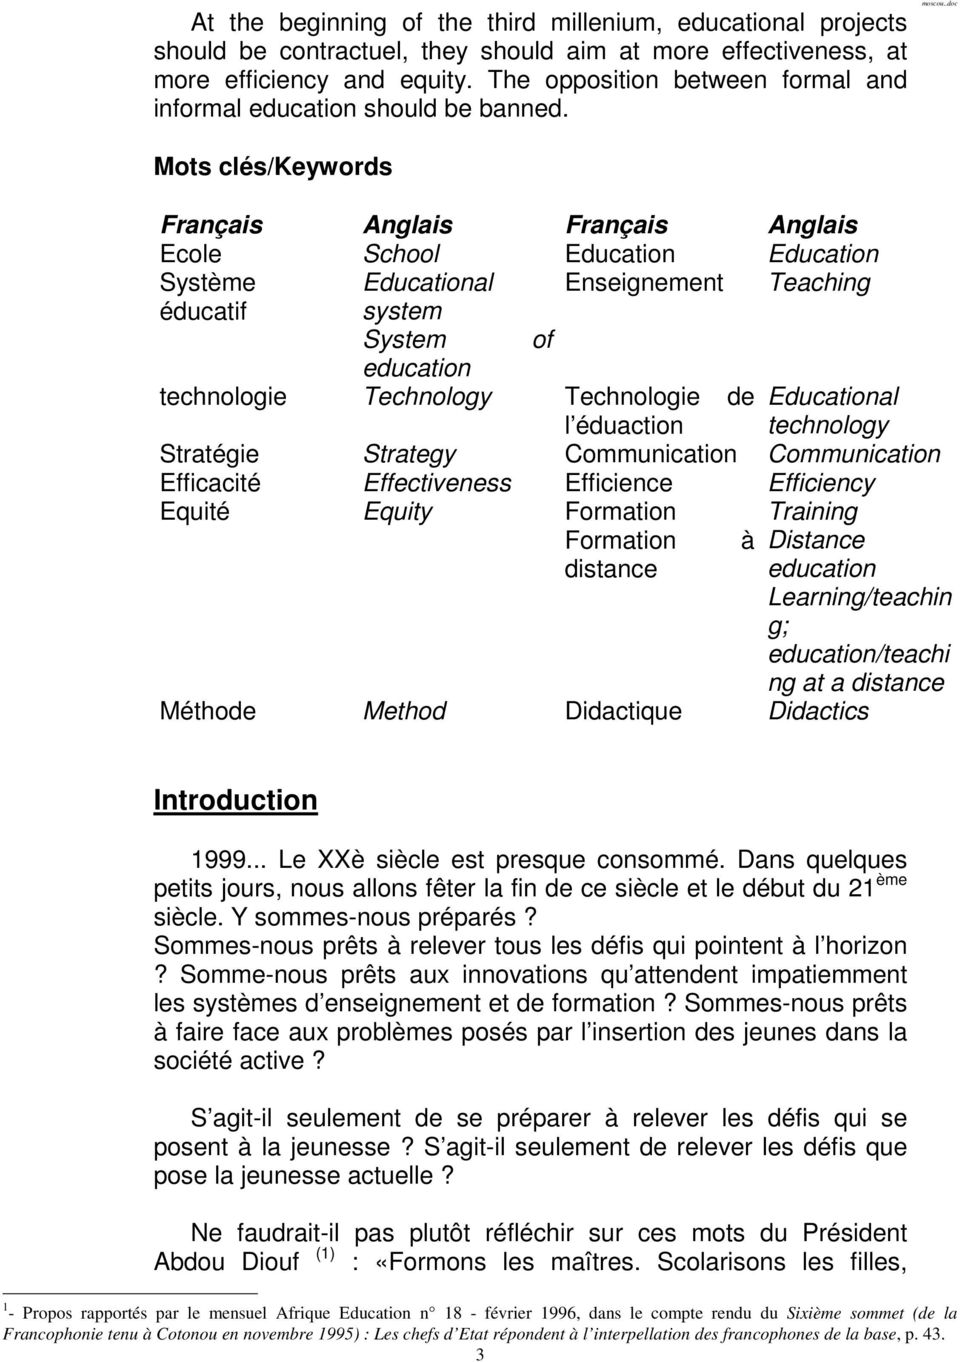 Mots clés/keywords Français Anglais Français Anglais Ecole School Education Education Système Educational Enseignement Teaching éducatif system System of education technologie Technology Technologie